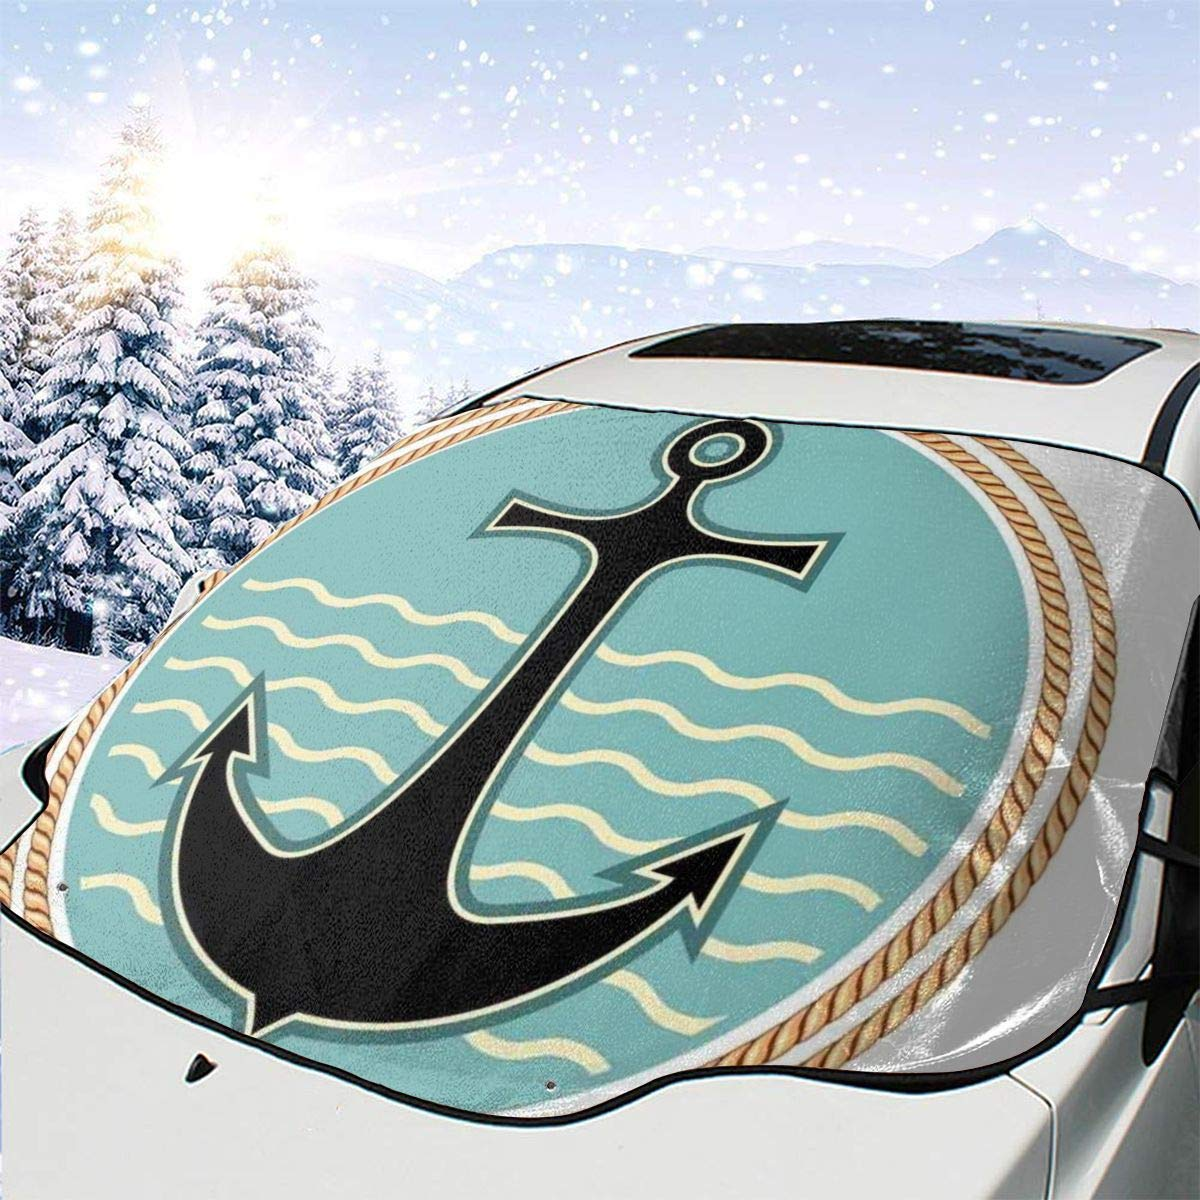 Car Front Window Windshield Snow Cover Wav Nautical Symbol Max 47% OFF with Max 80% OFF